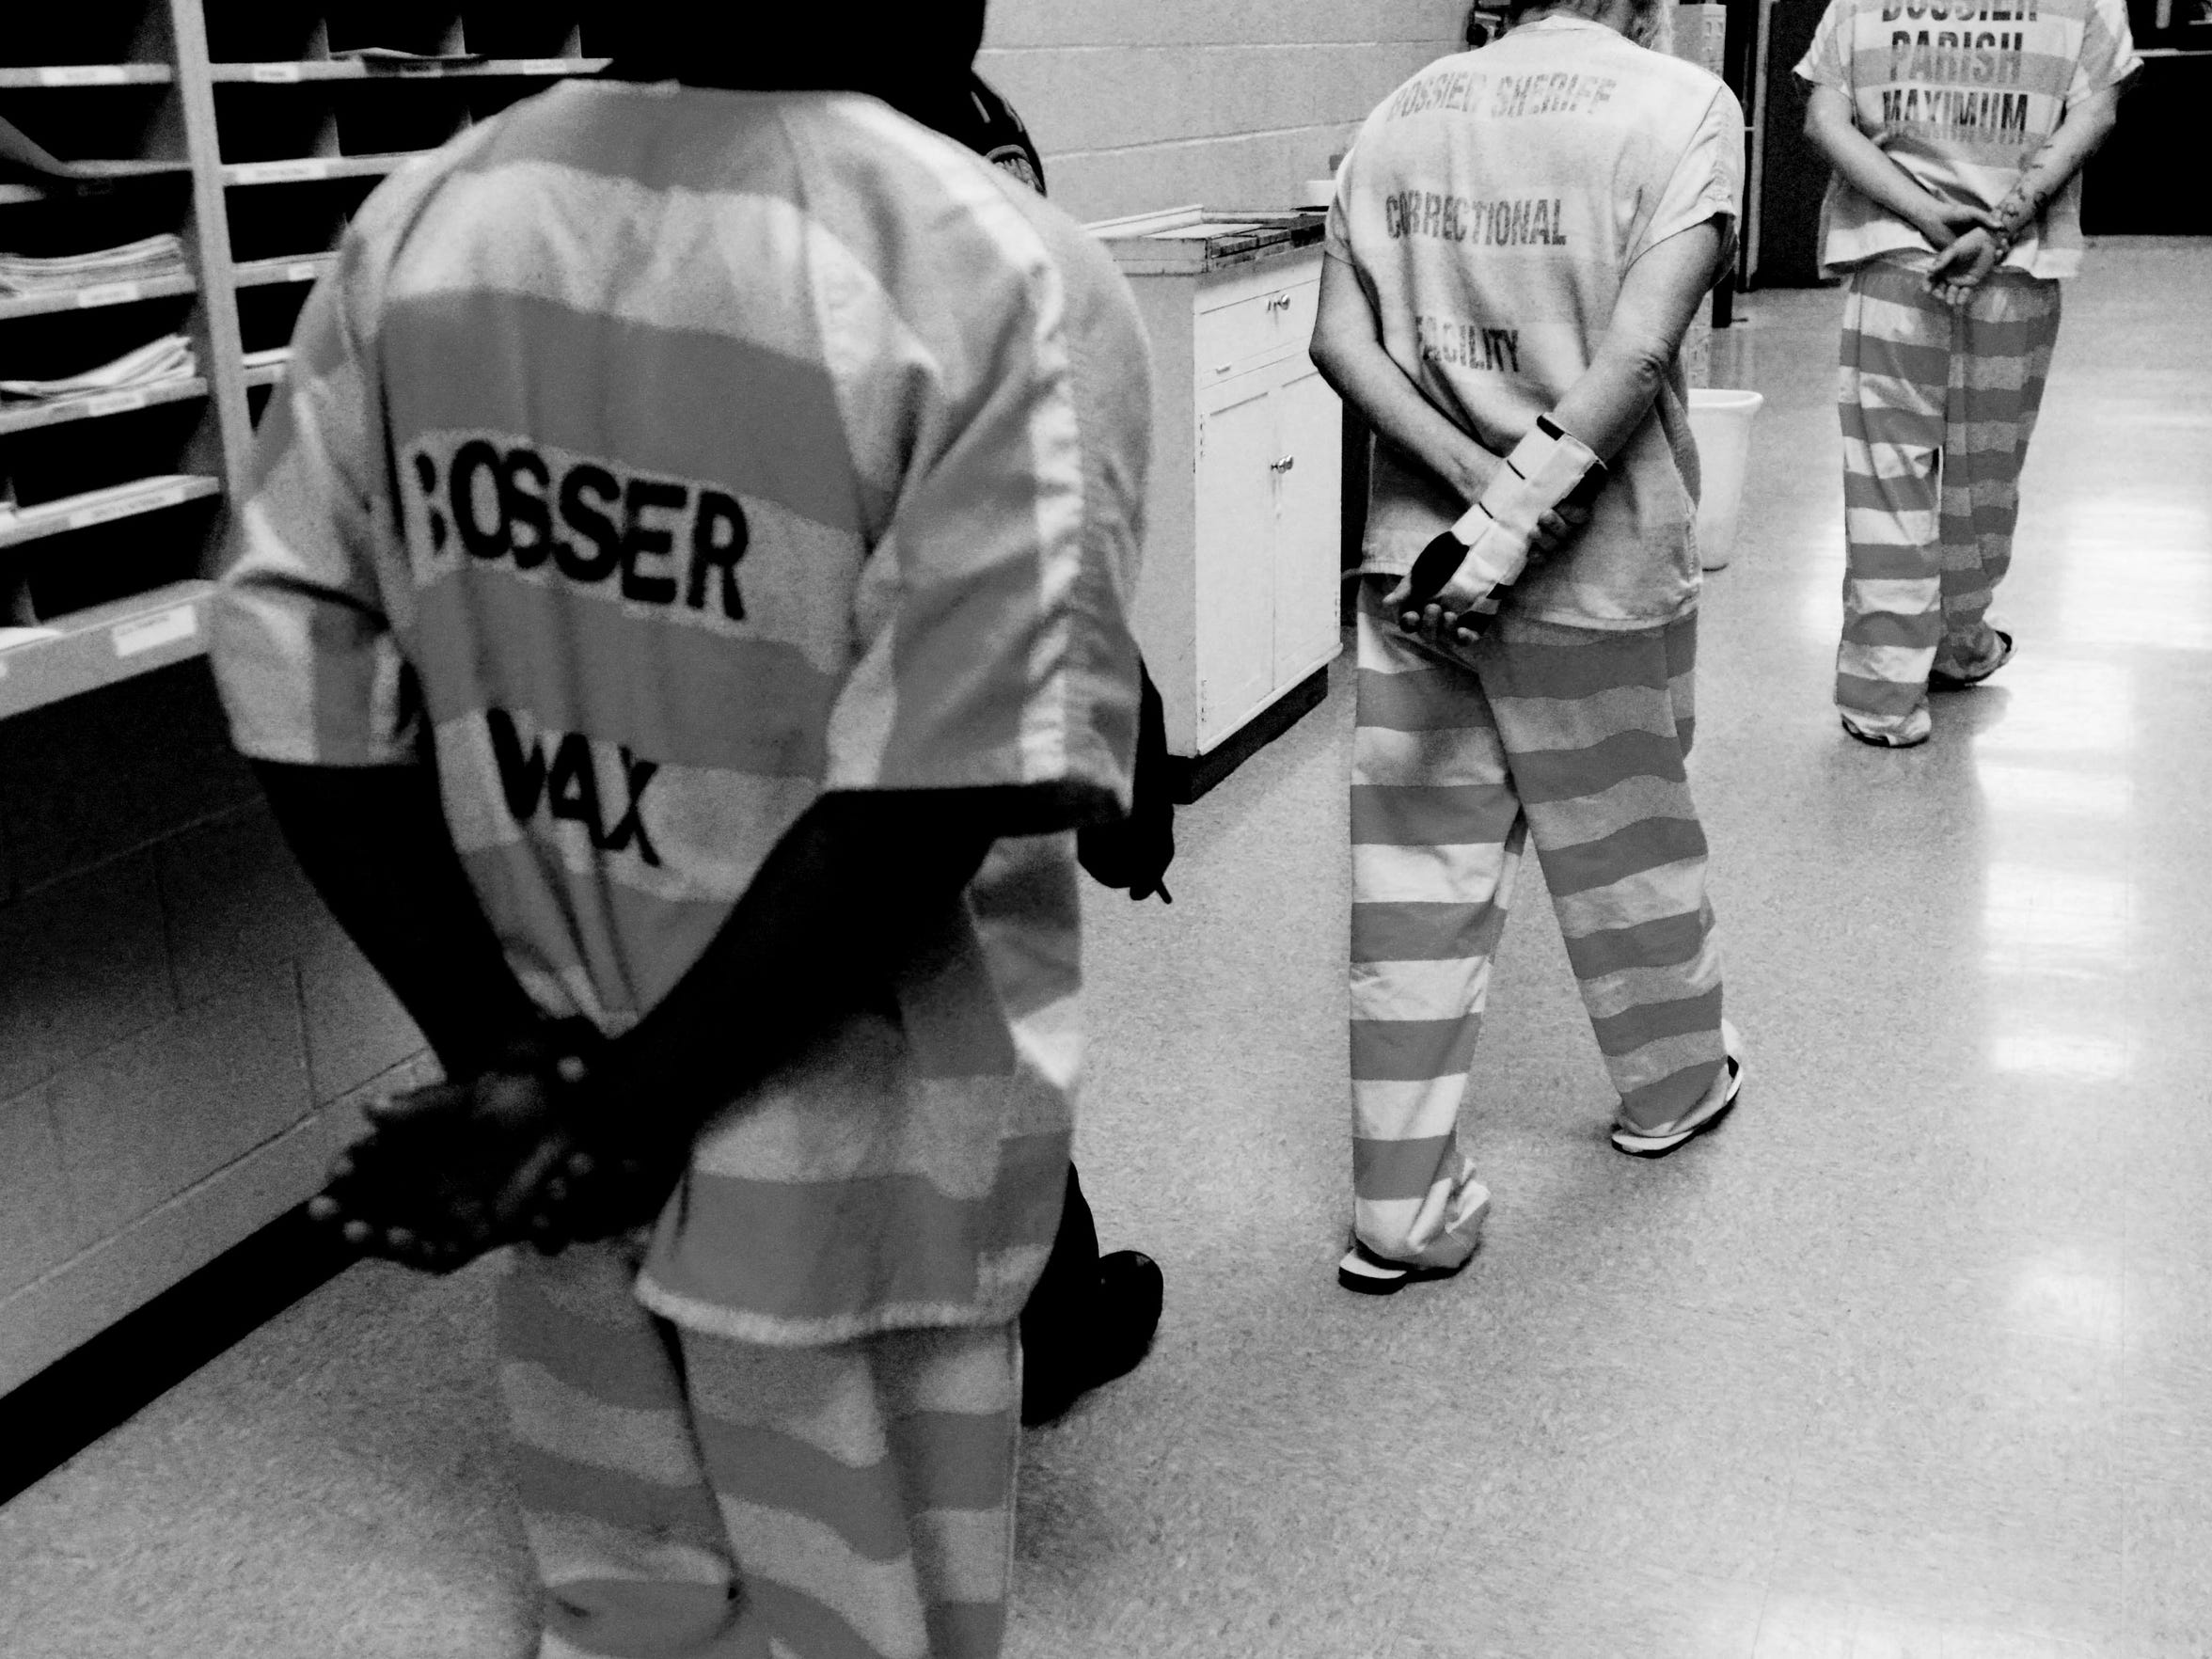 Inmates at the Bossier Maximum Security Facility in Benton.